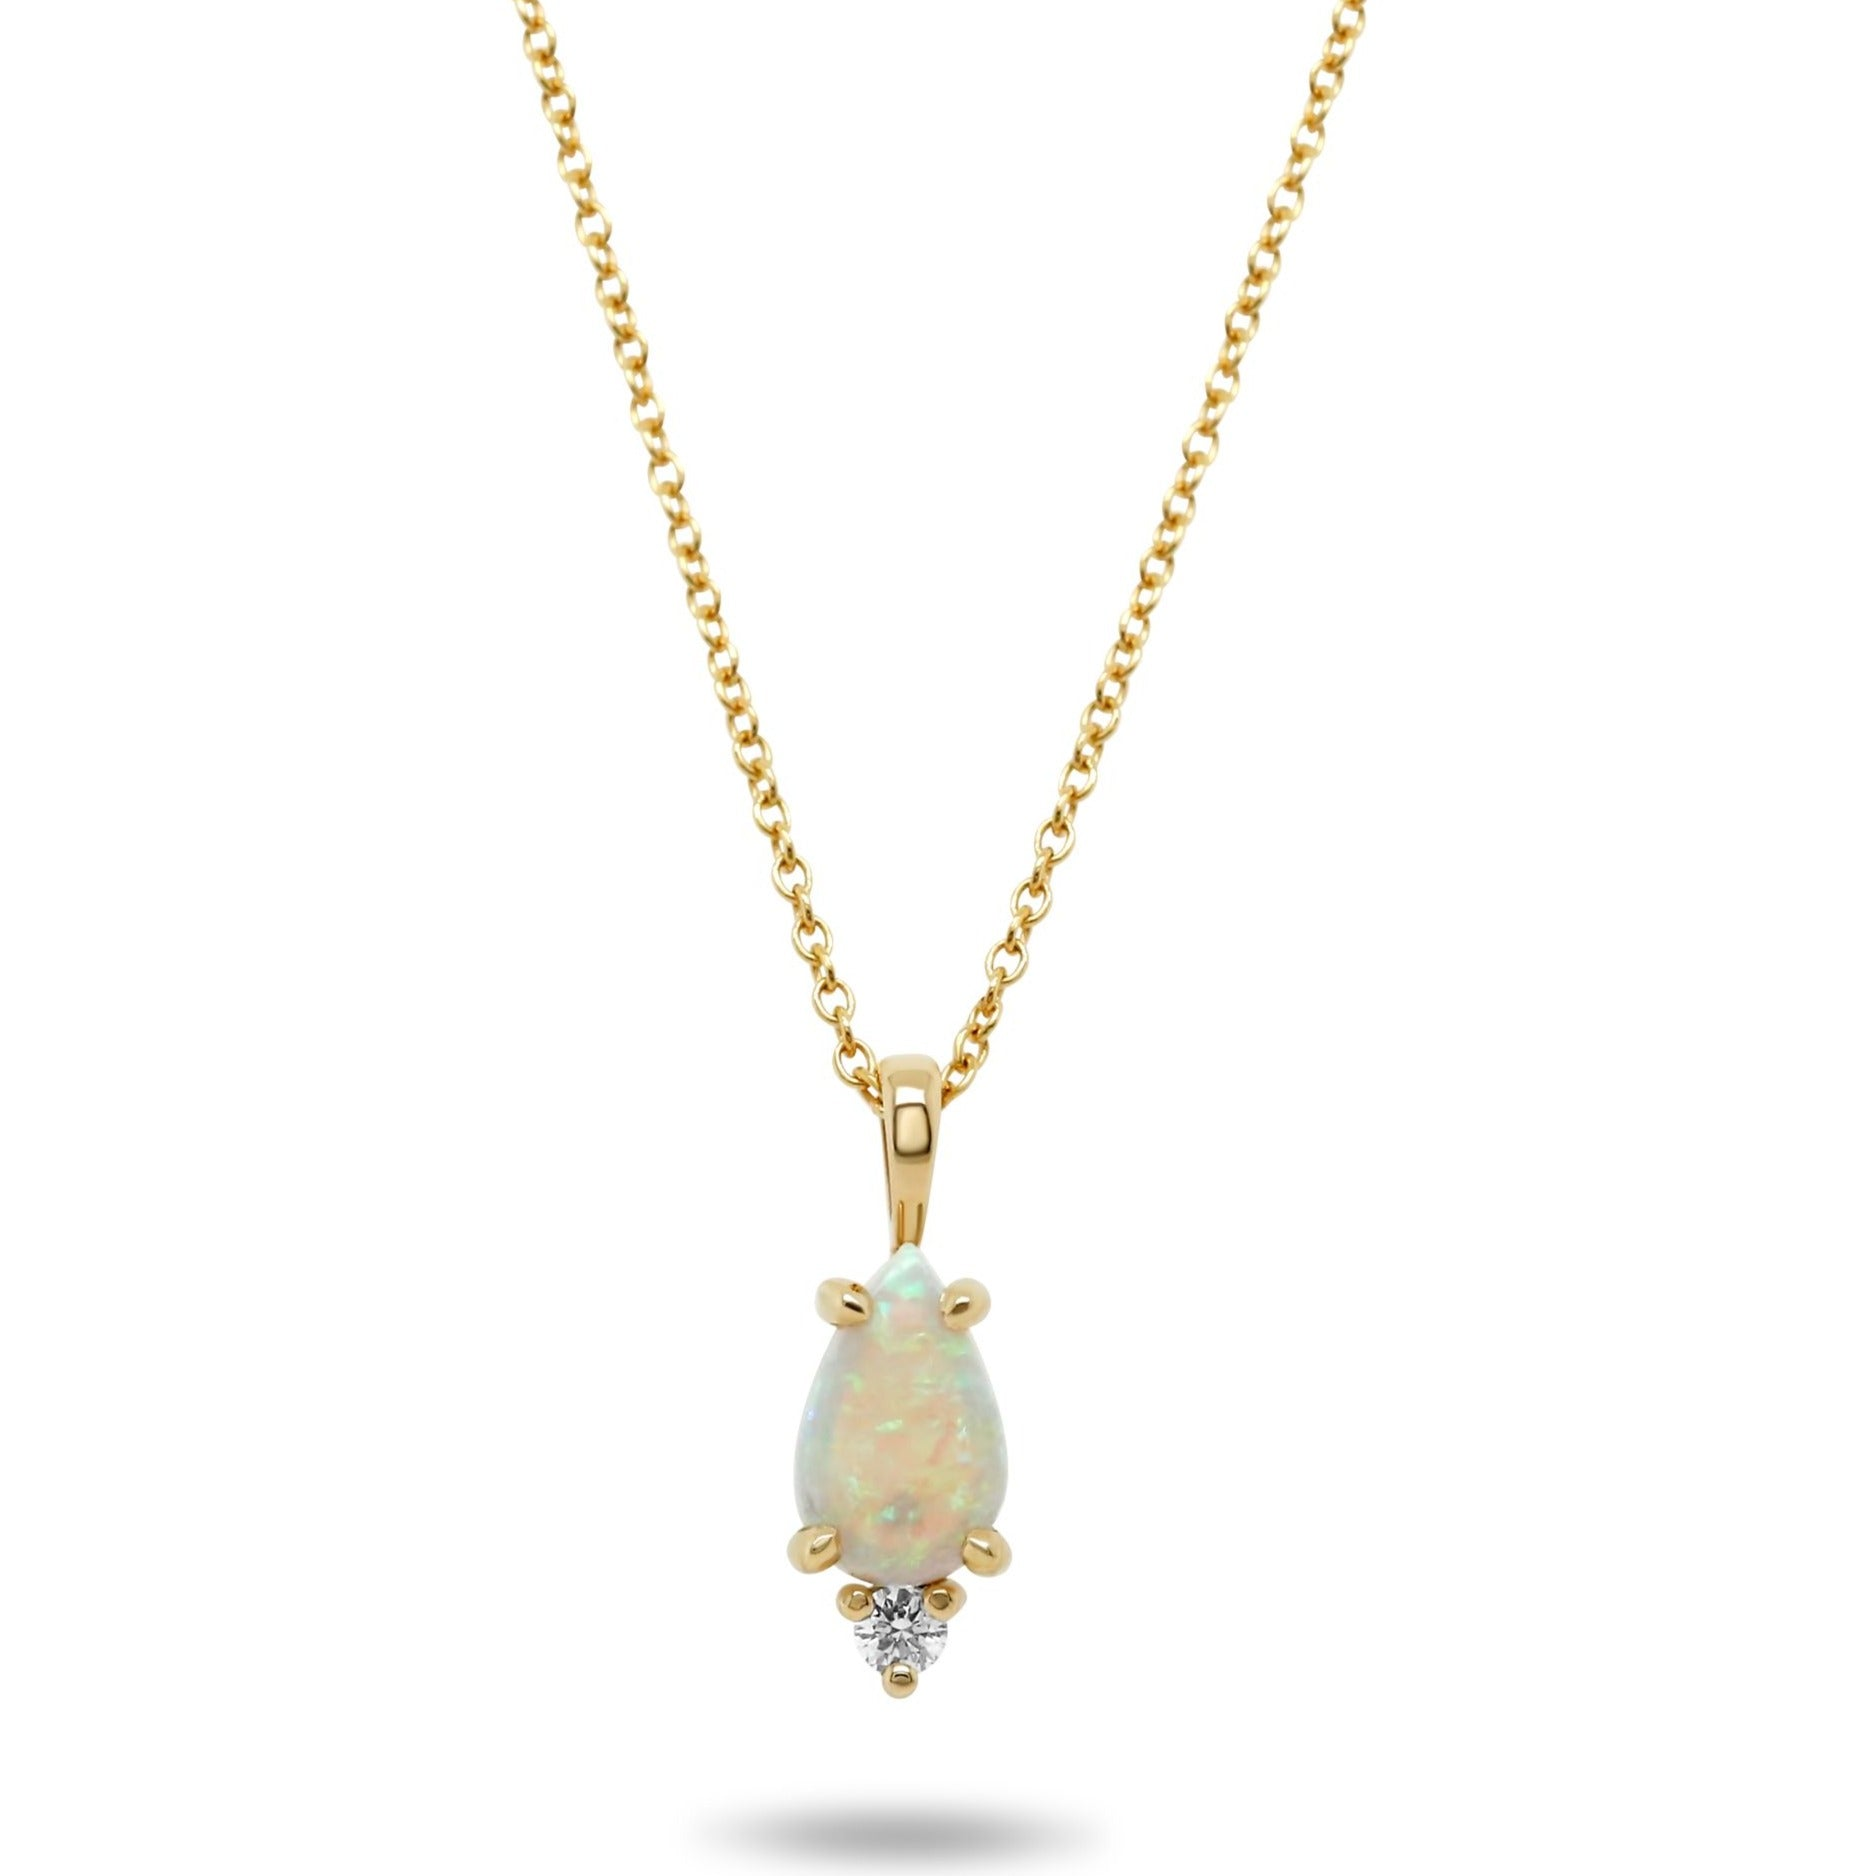 14k yellow gold pear shaped Australian opal and diamond necklace with a 16in chain